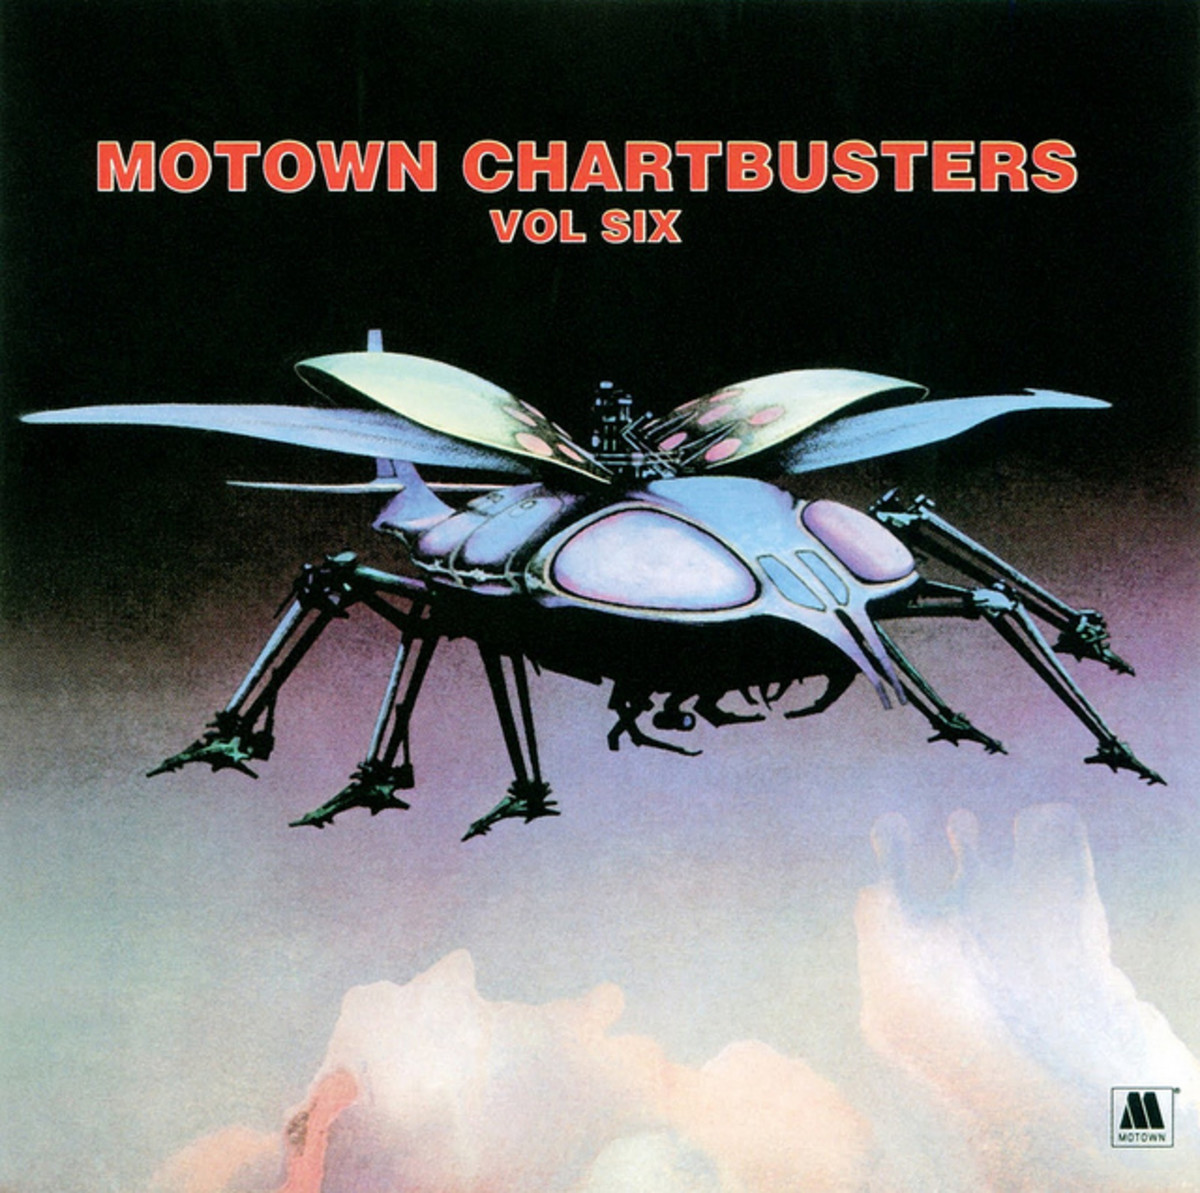 "Various Artists: Motown Chartbusters, Vol. Six Tamala / Motown STML 11191 12"" LP Vinyl Record, US Pressing (1971) Album Cover Art & Design by Roger Dean"